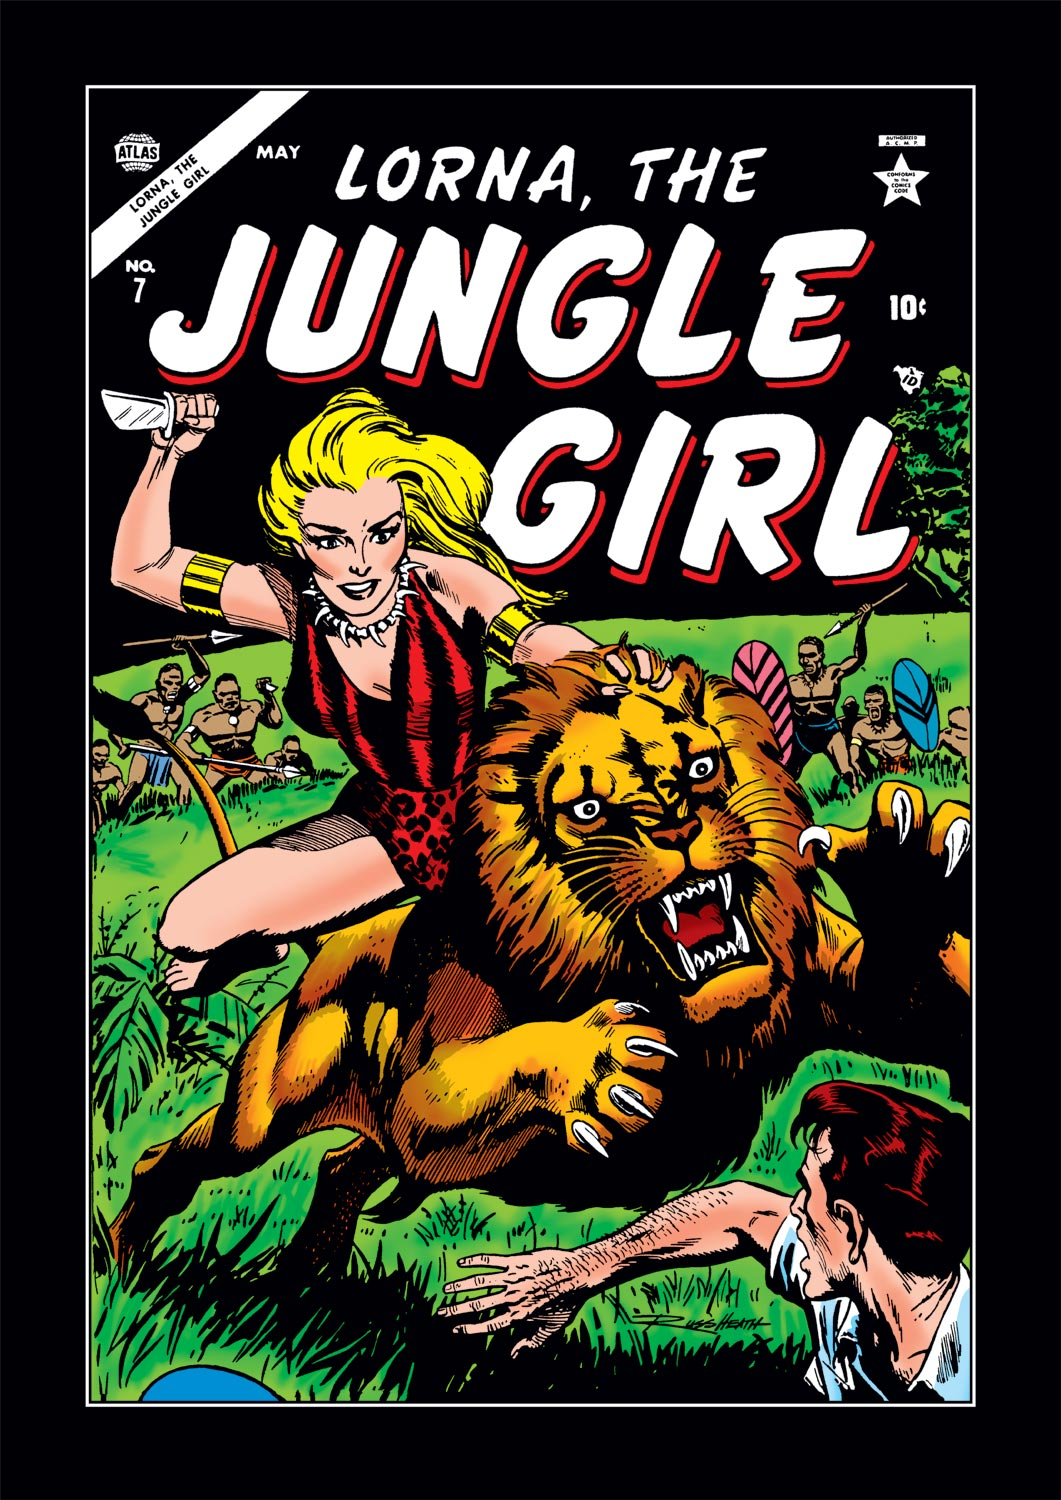 Lorna the Jungle Girl (1954) #7